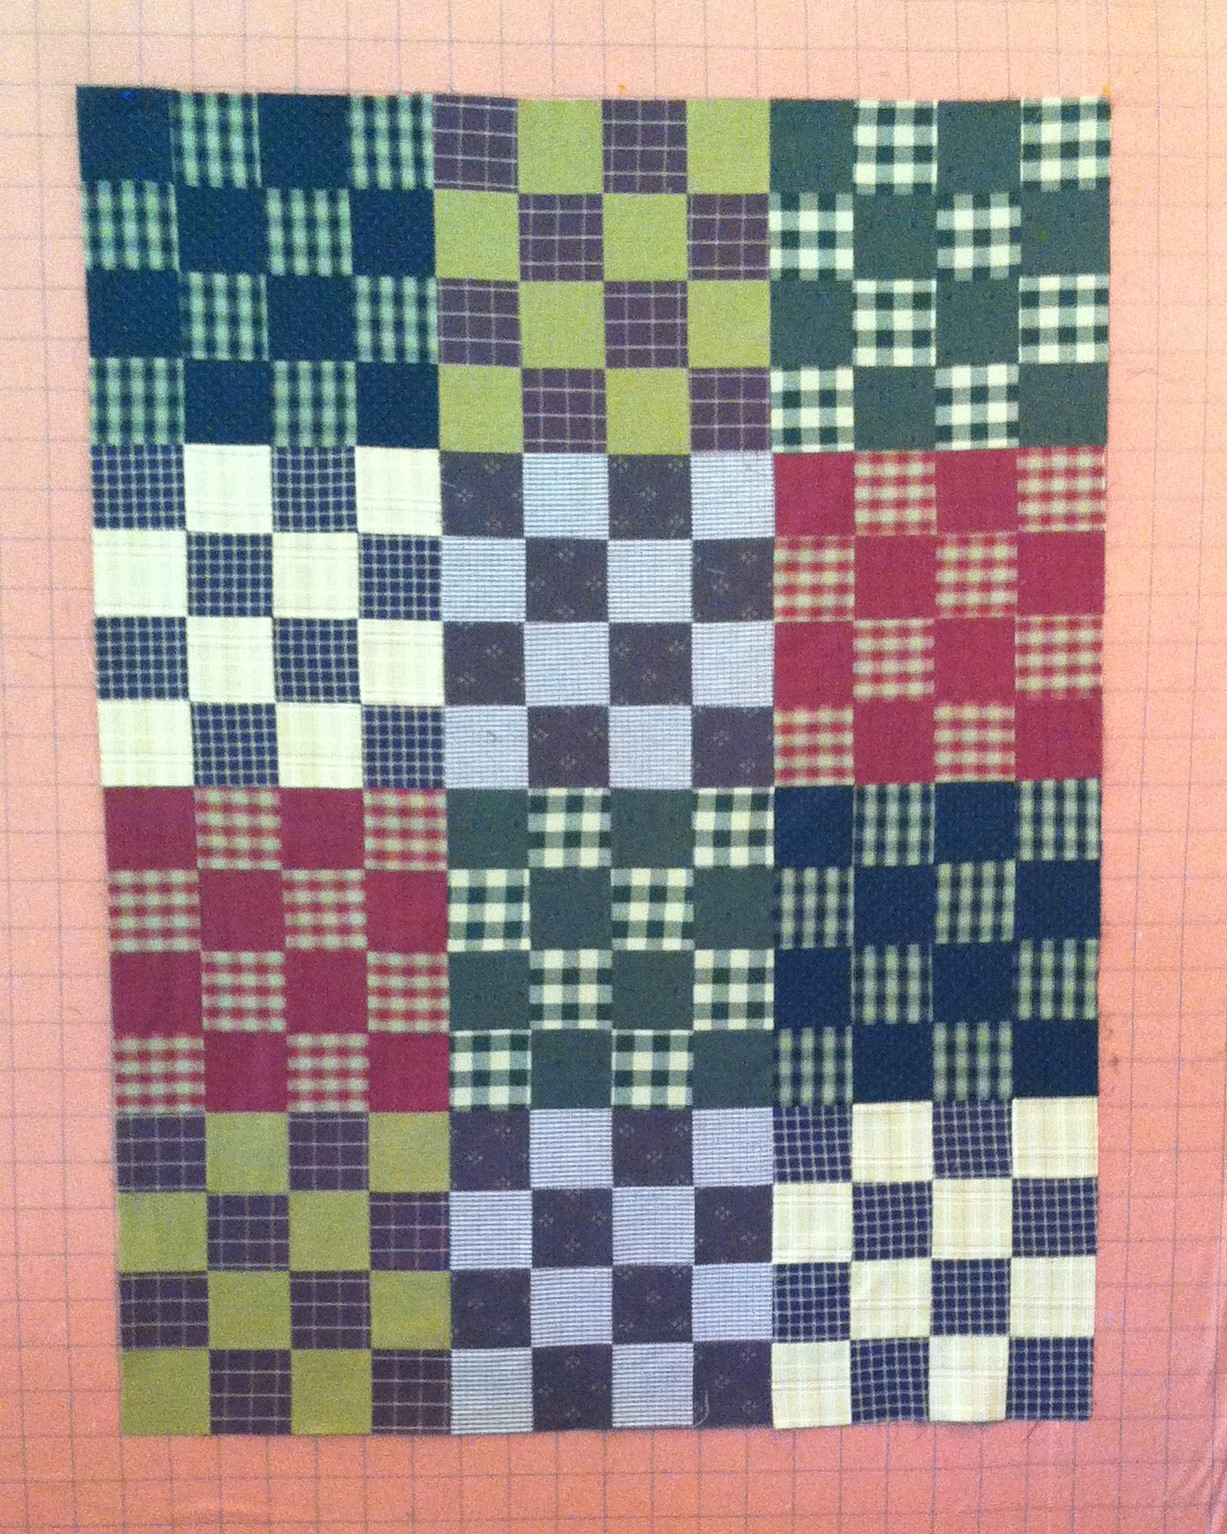 """quilt a symbol in alice walkers everyday use Free essay: analysis of patches: quilt and community in alice walker's everyday use in a critique titled """"patches: quilt and community in alice walker's."""